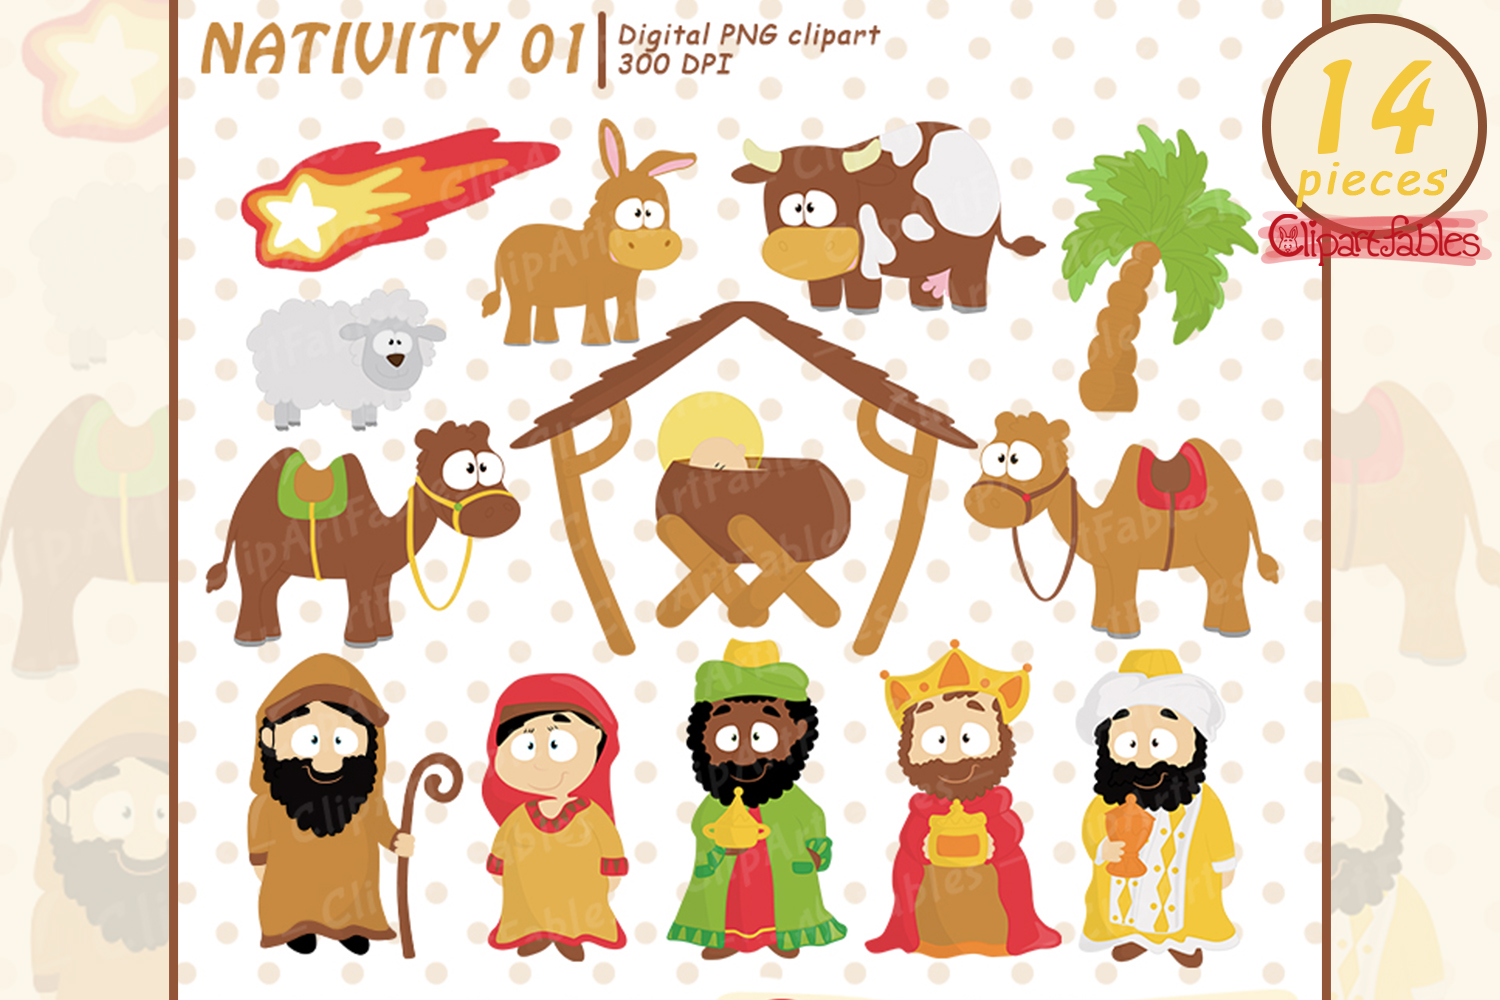 Cute baby jesus holy. Nativity clipart character